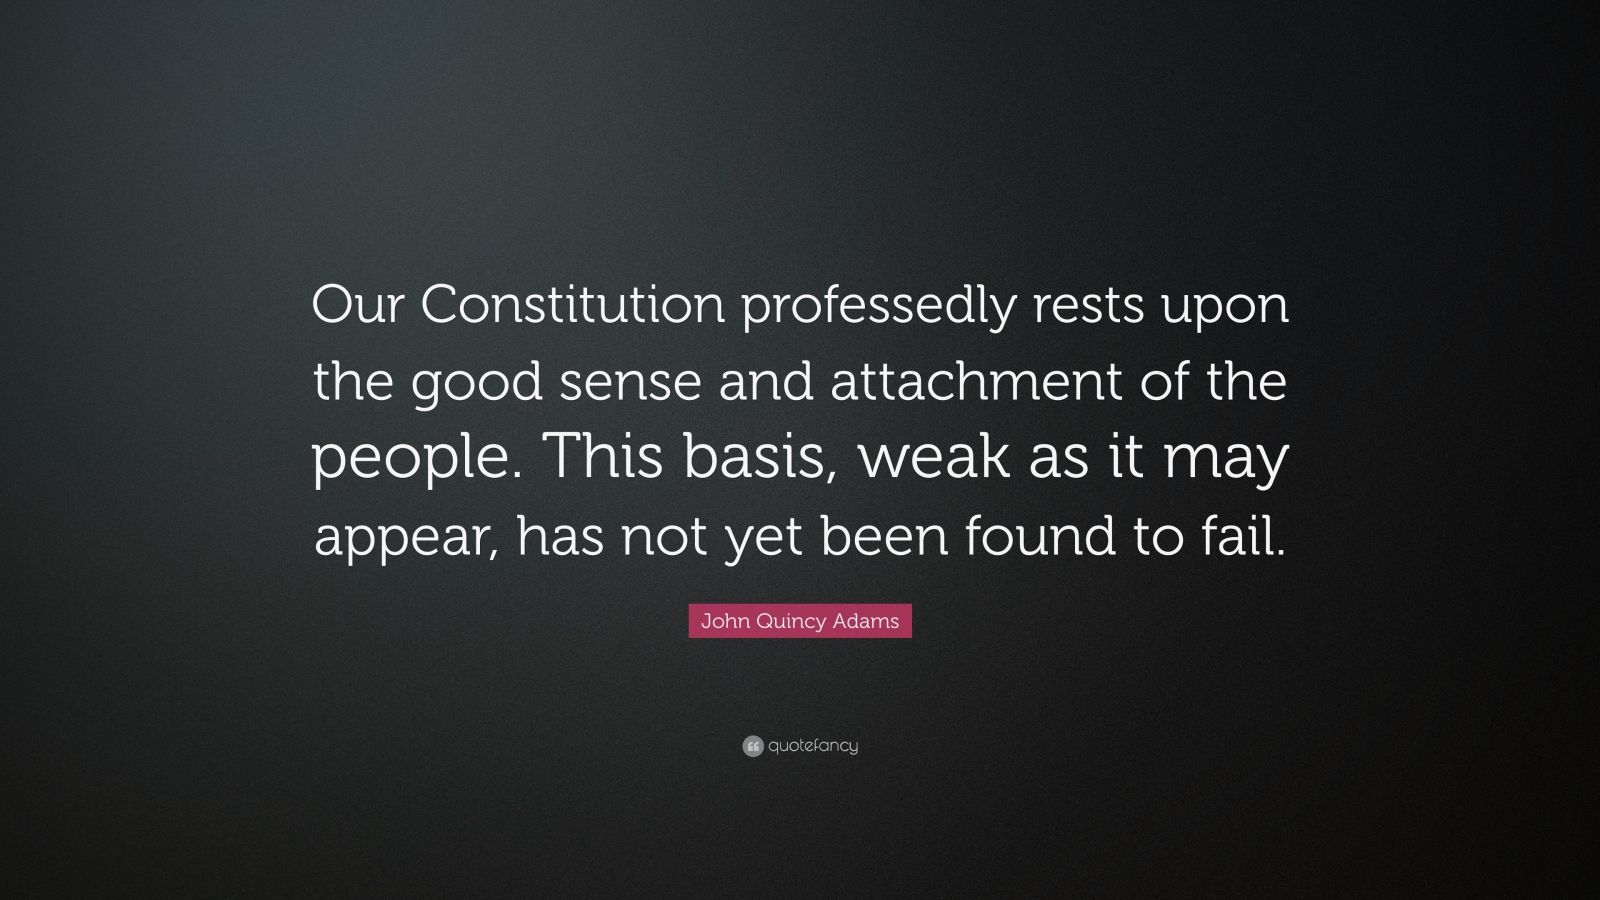 """John Quincy Adams Quote: """"Our Constitution professedly rests upon the good sense and attachment of the people. This basis, weak as it may appear, has not yet been found to fail."""""""